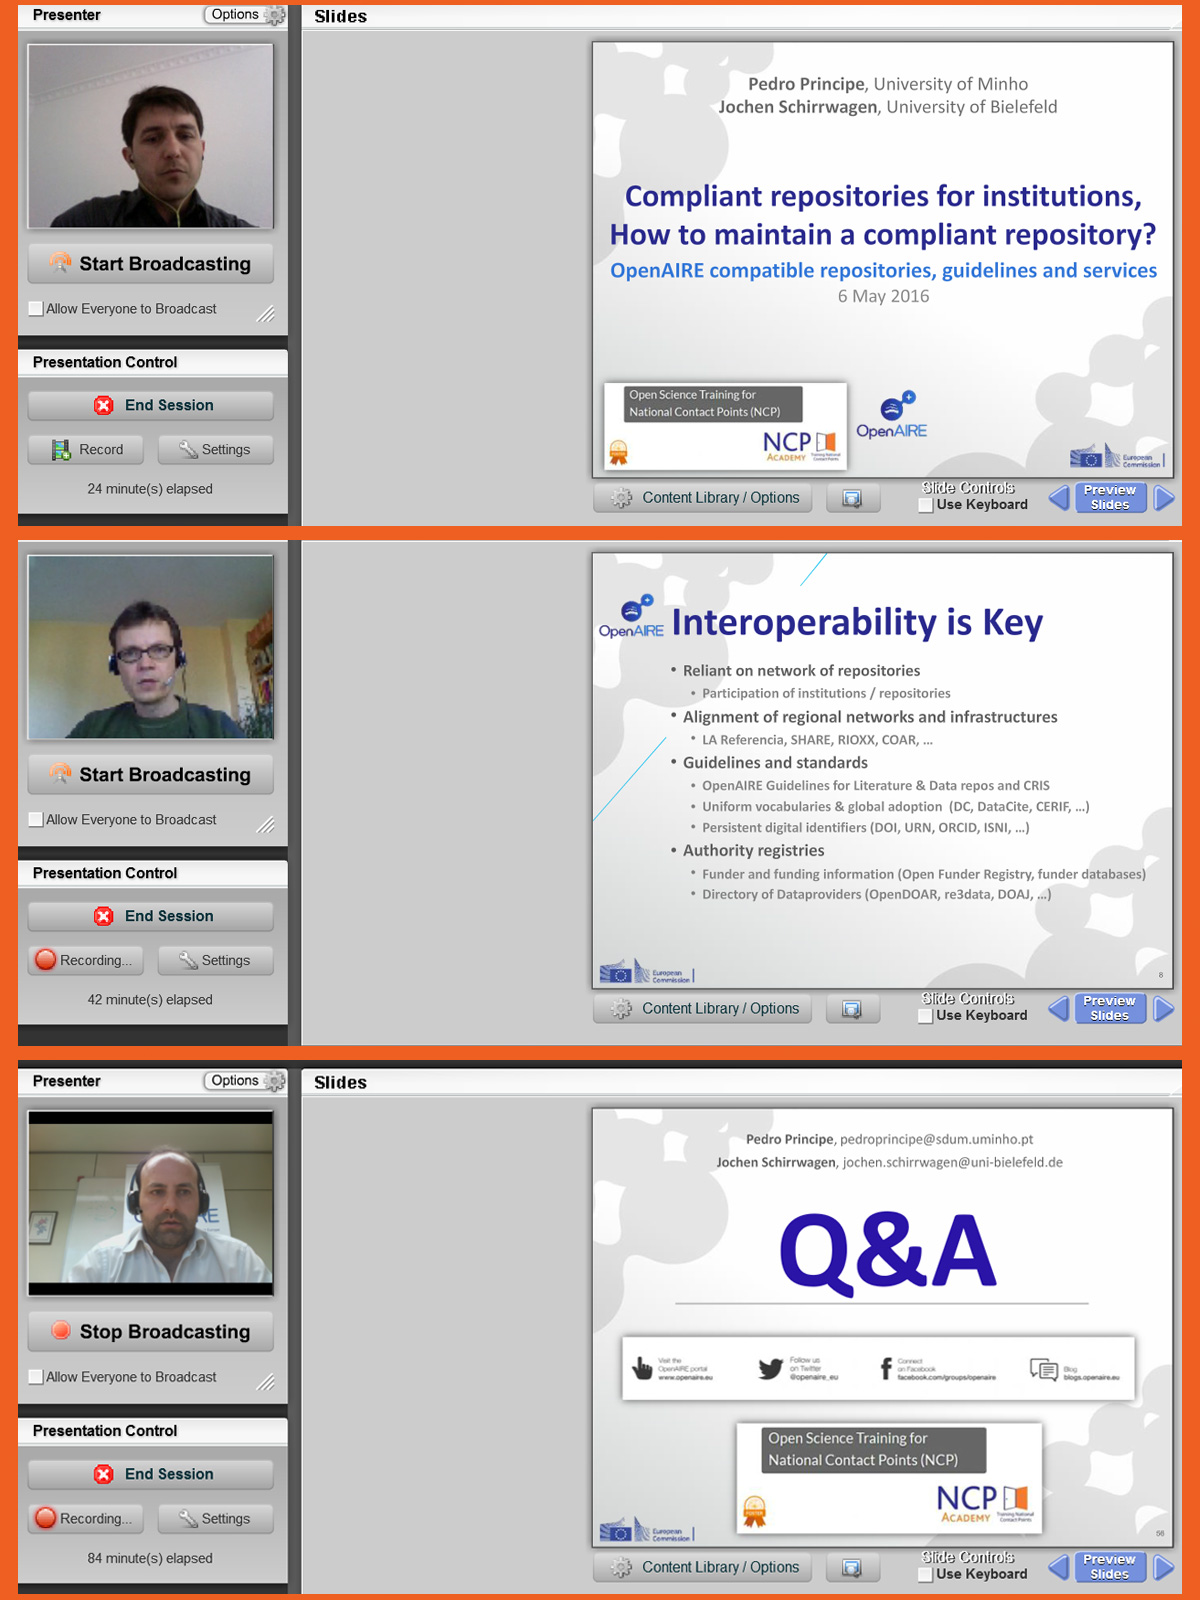 Webinar on OpenAIRE compatible repositories, guidelines and services